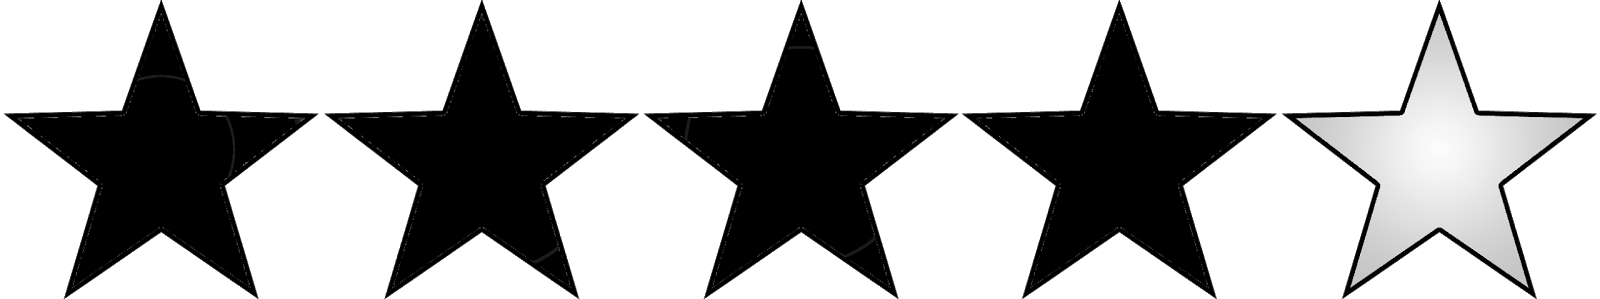 3 out of 5 stars png. Black sticky amazing i vector transparent stock